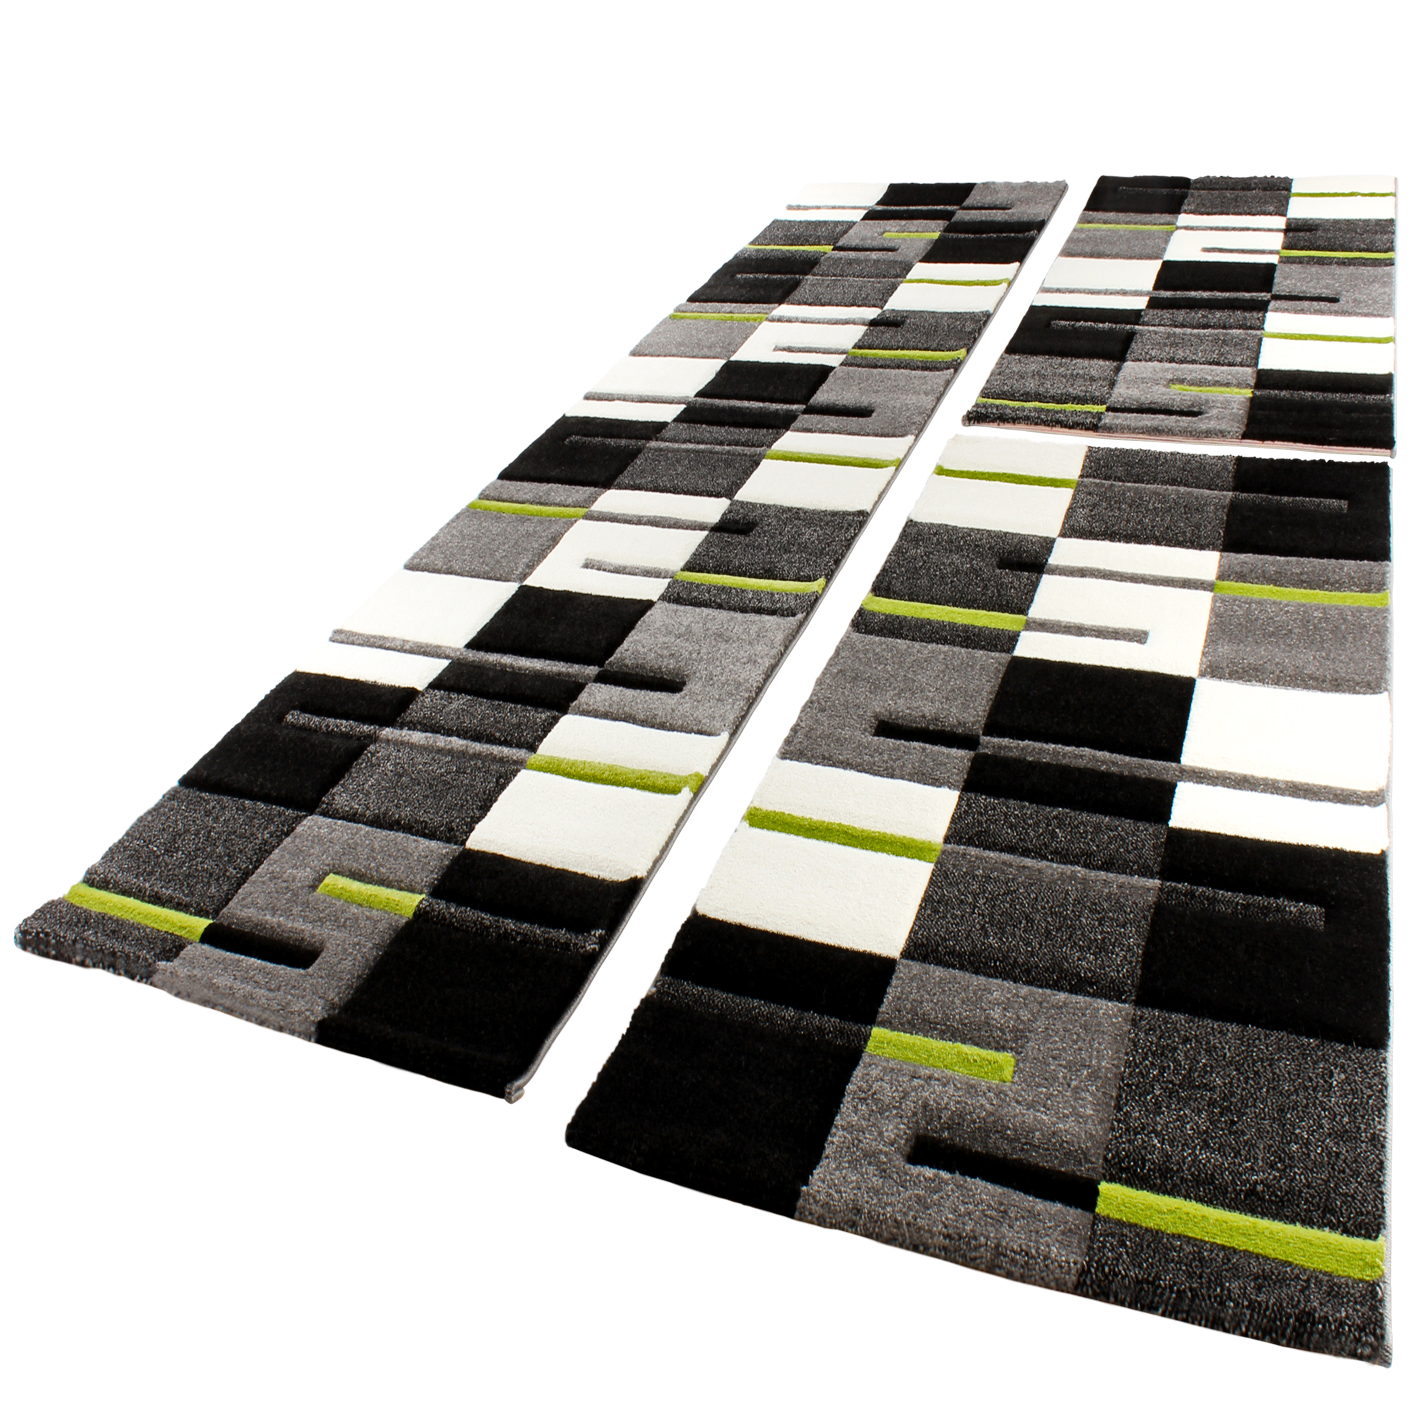 Bed Border Rug Contour Cut Checked Green Grey Anthracite Runner Set 3-Piece